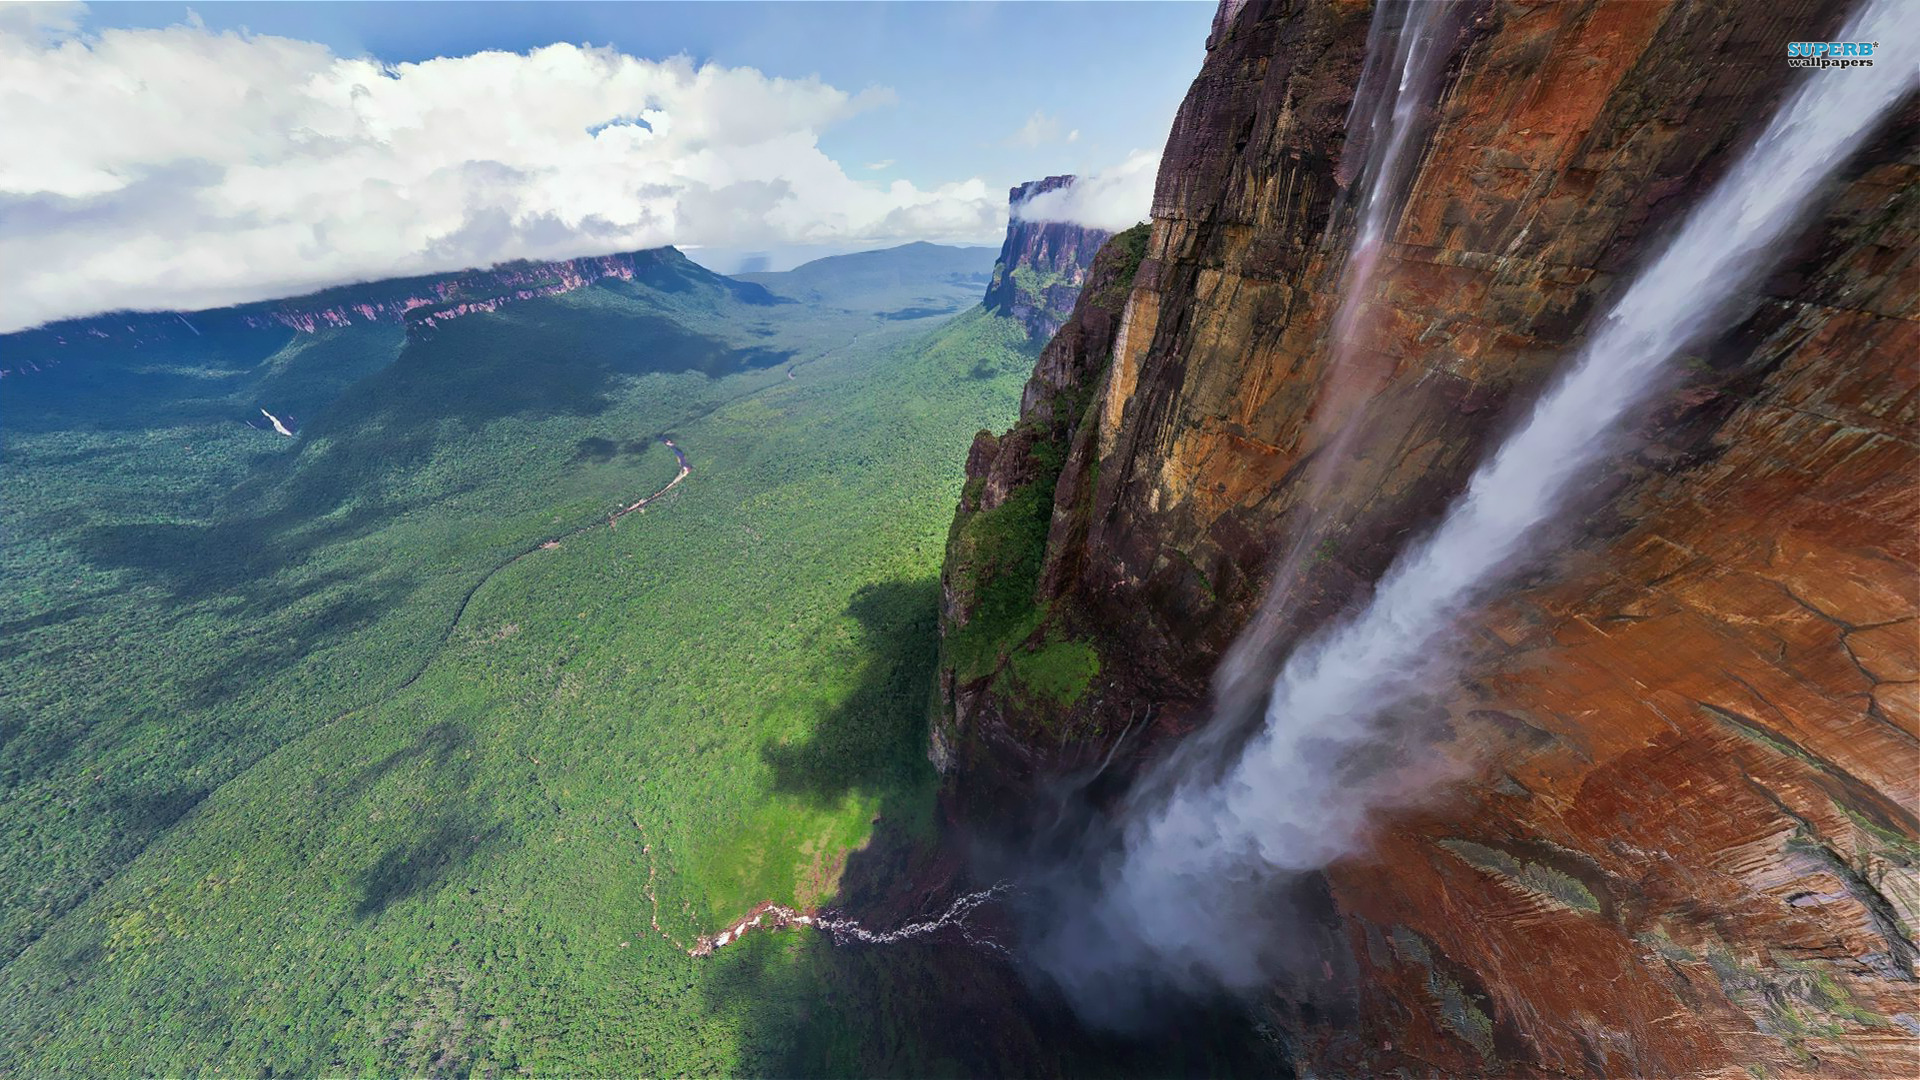 angel falls Apart from trips to angel falls, the canaima national park offers some challenging trekking, including trips to the 700km² plateau of auyan-tepui.